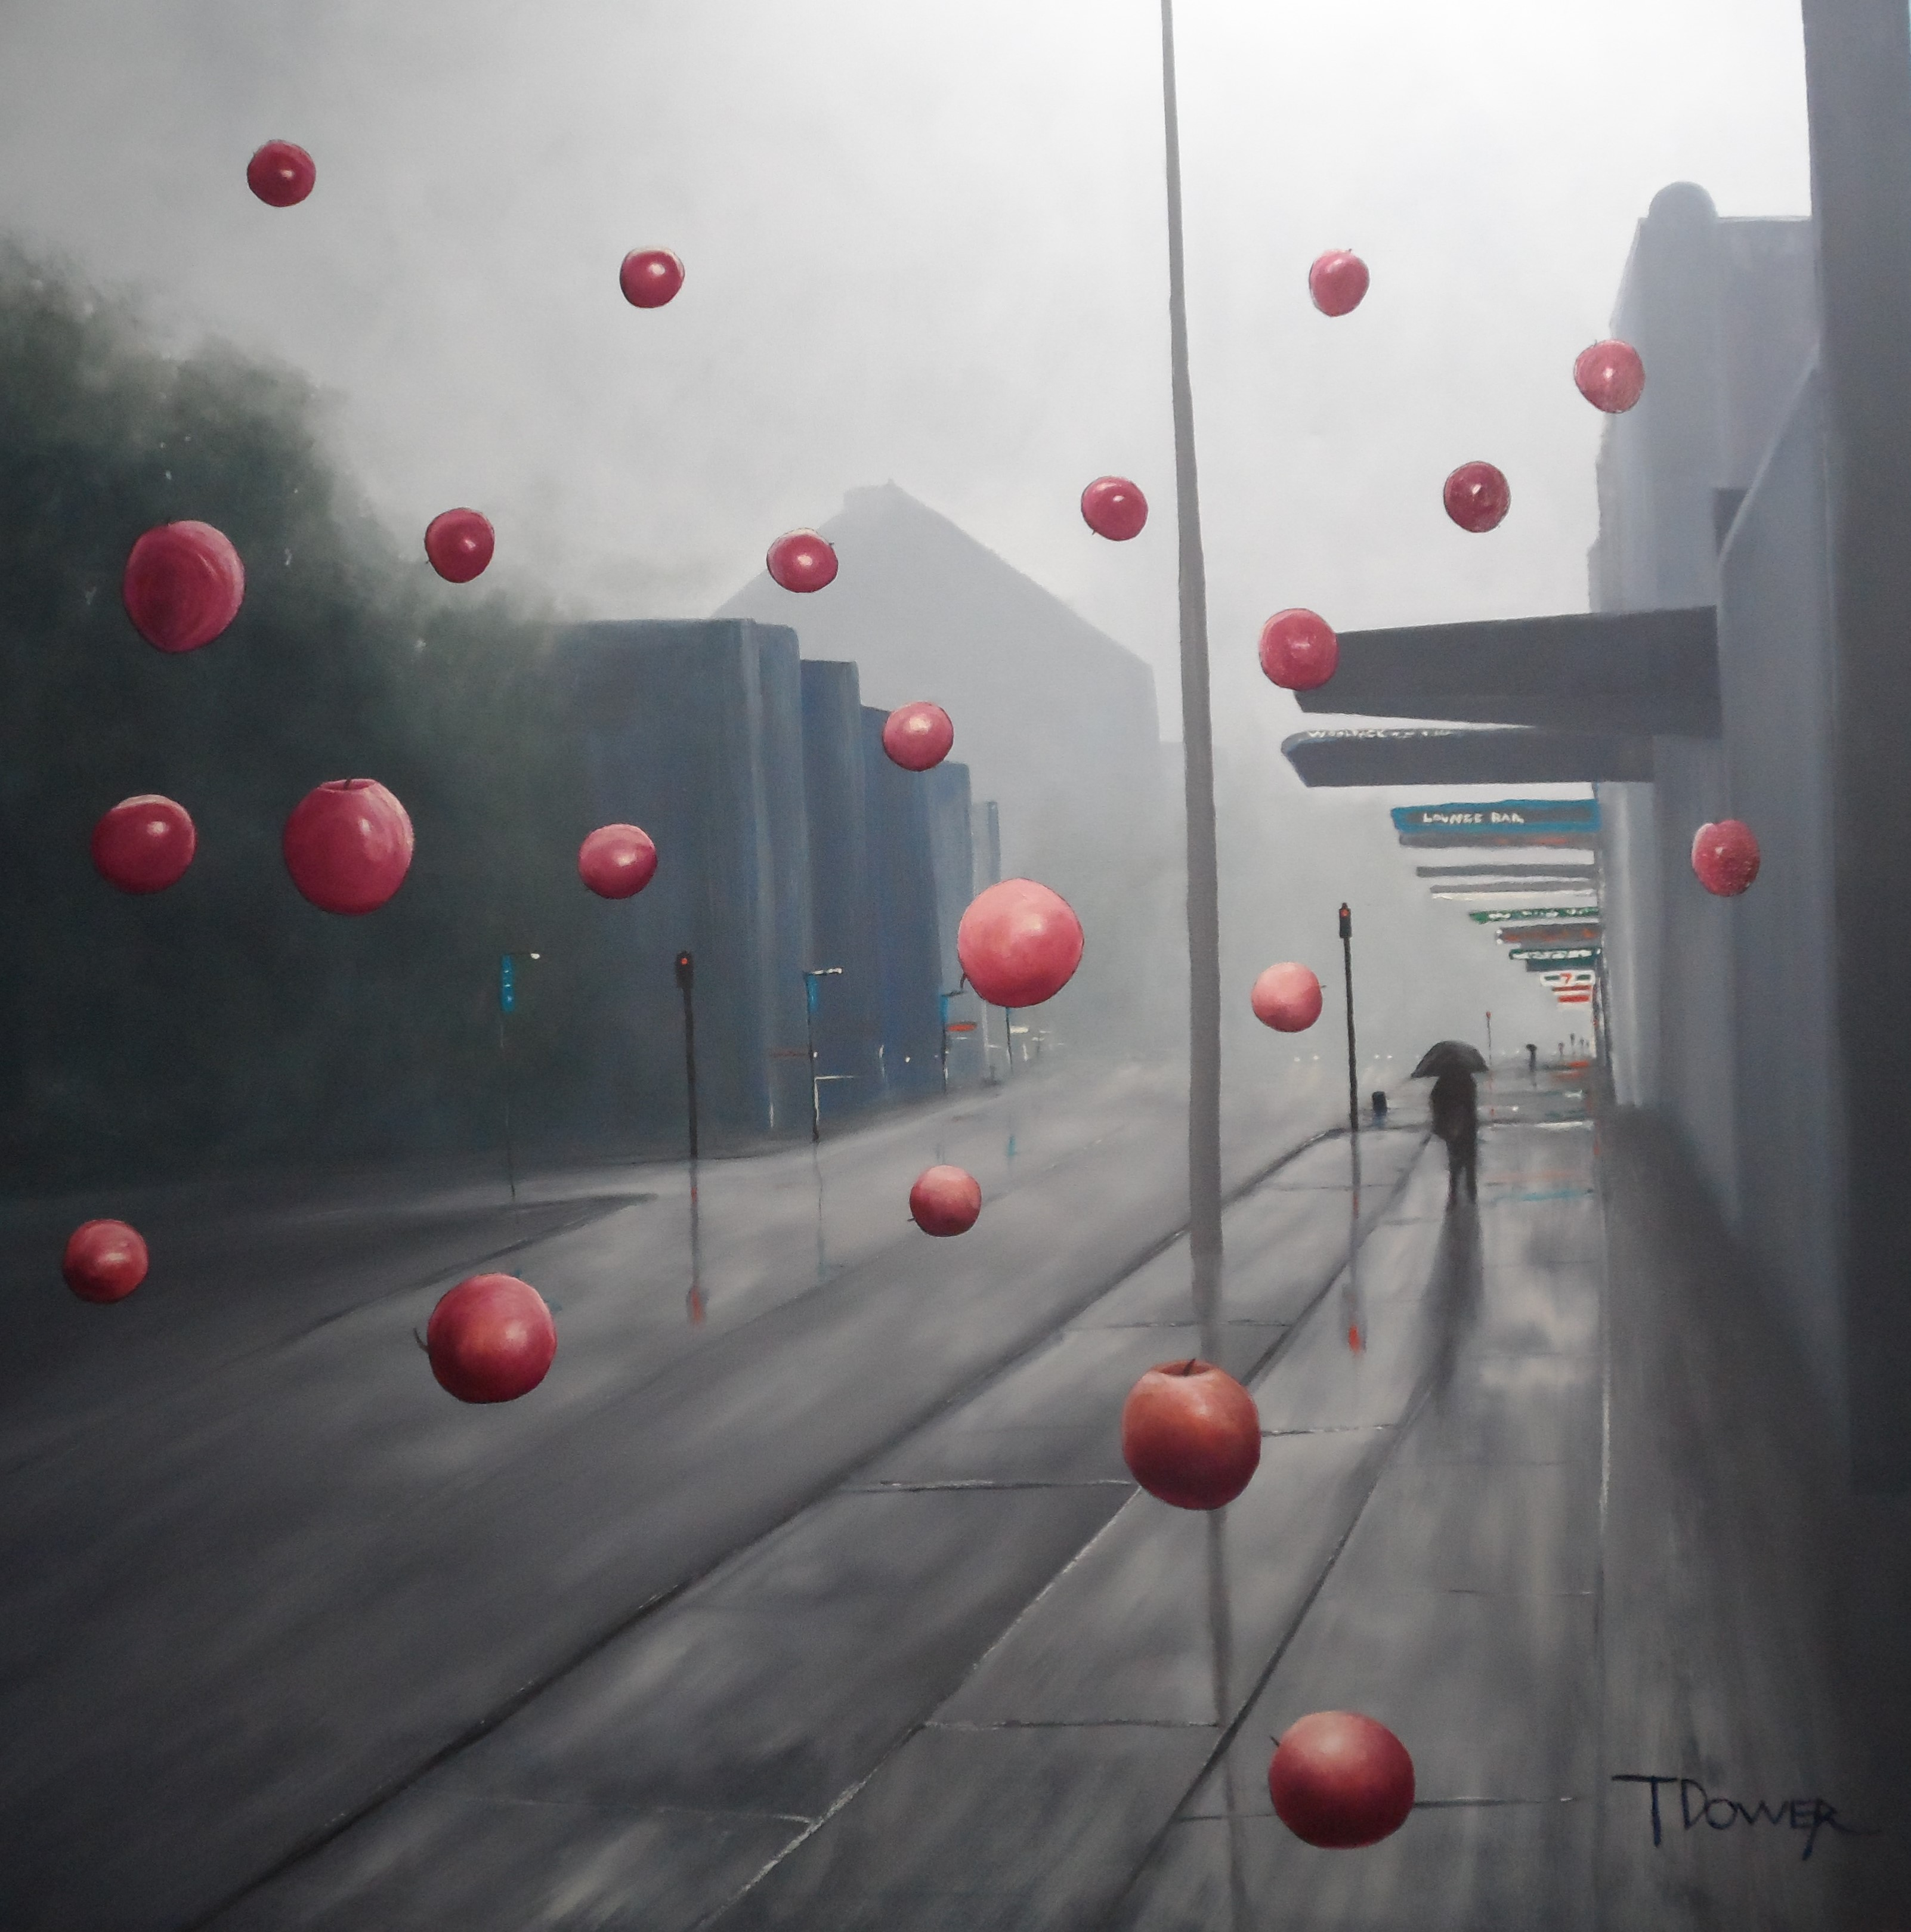 Felix murillo lleno de colores painting acrylic artwork fish art - Terry Dower Artwork Its Raining Apples On George Street 2015 Oil Painting Surrealism